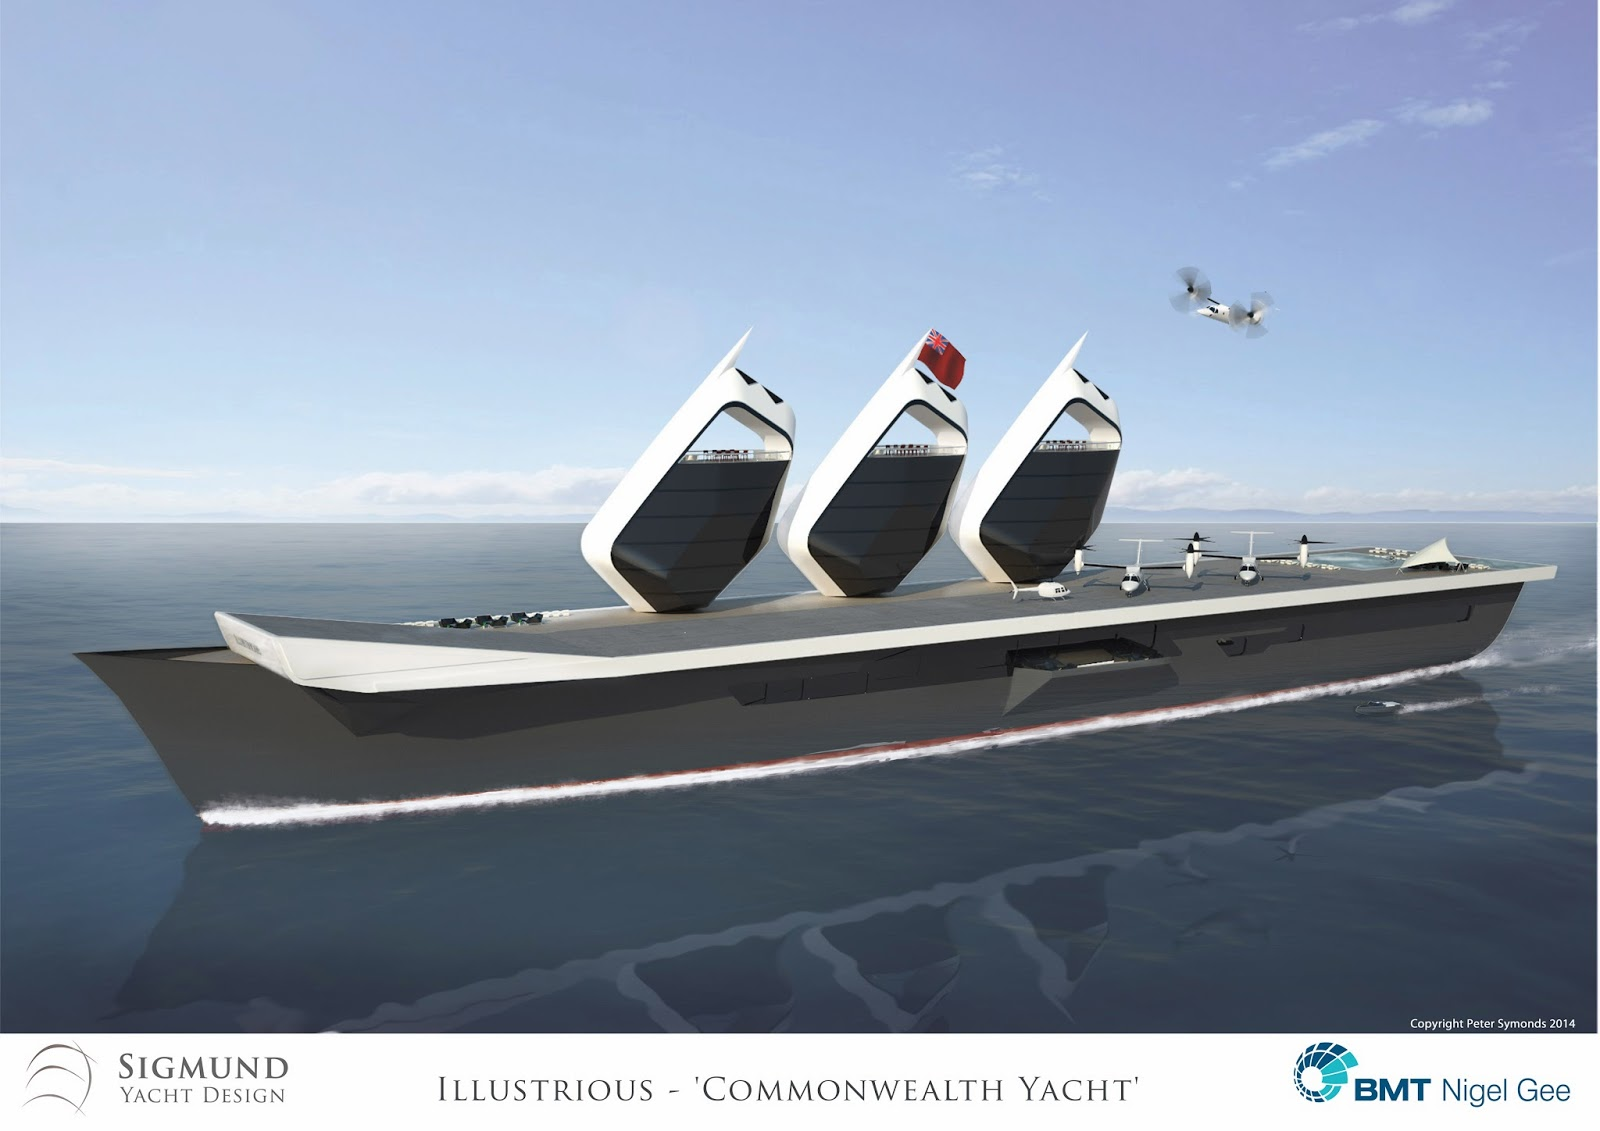 Aircraft Carrier Illustrious Could be Converted into a